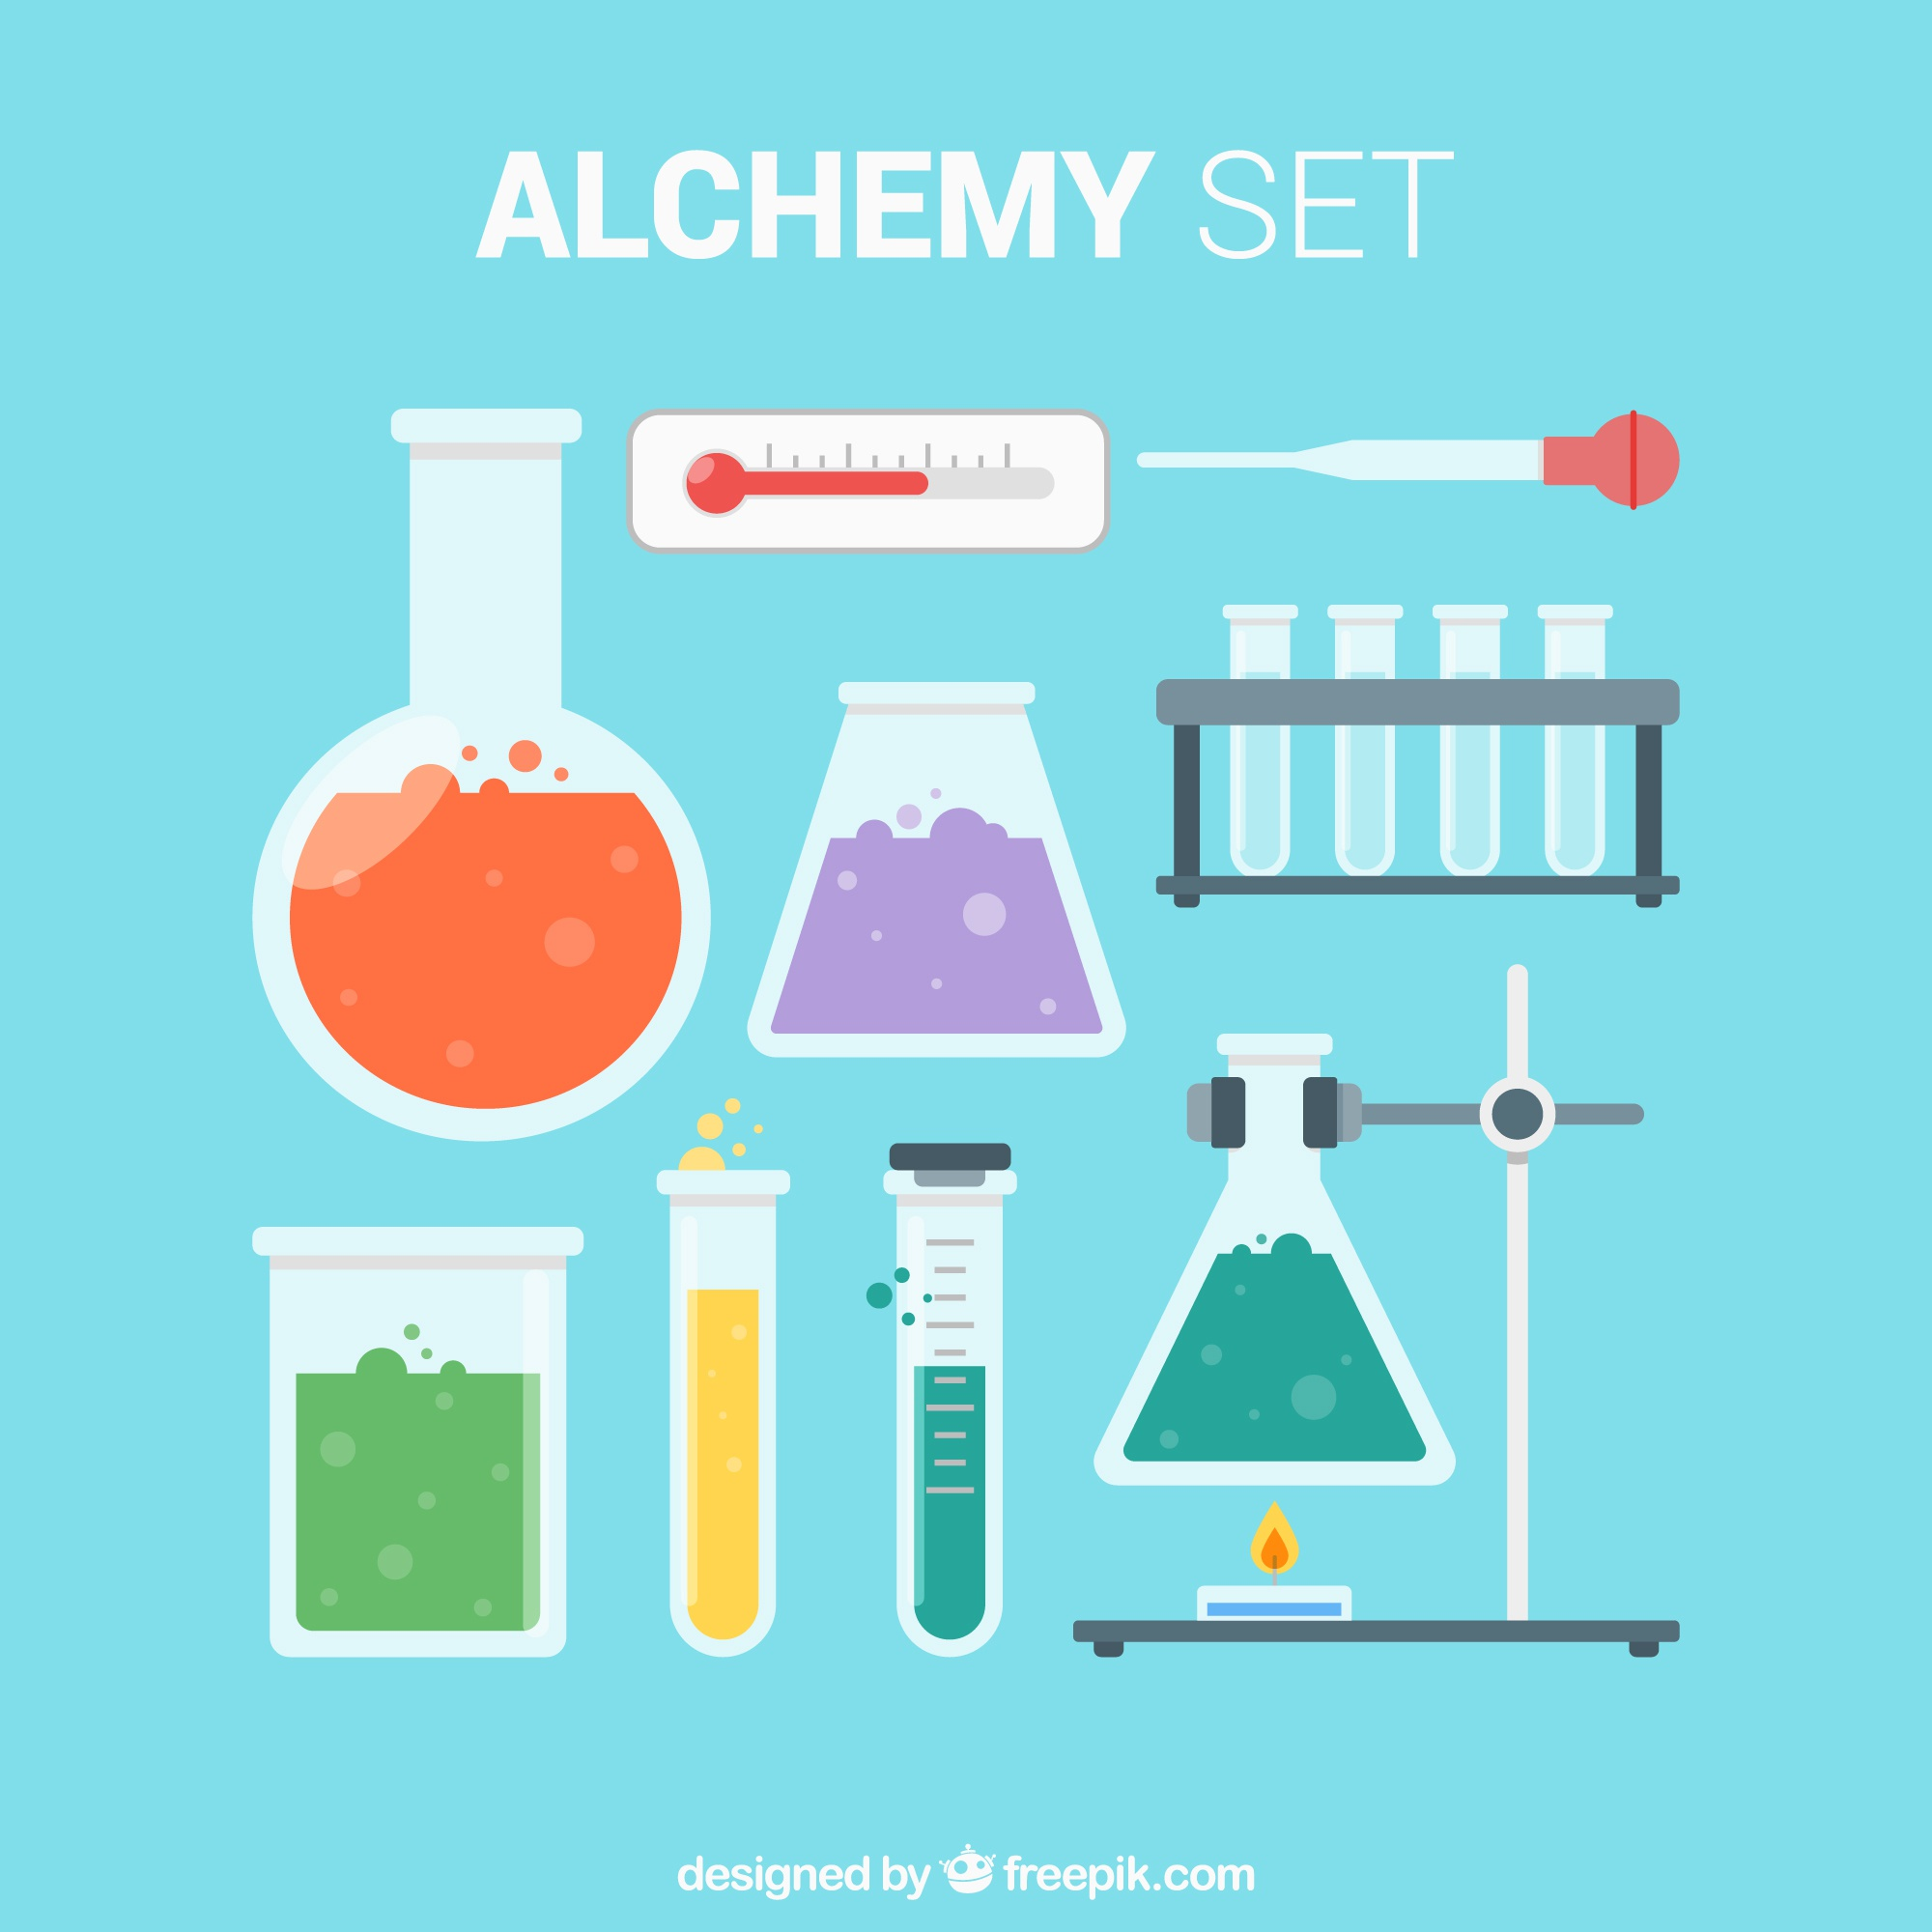 Essential laboratory objects